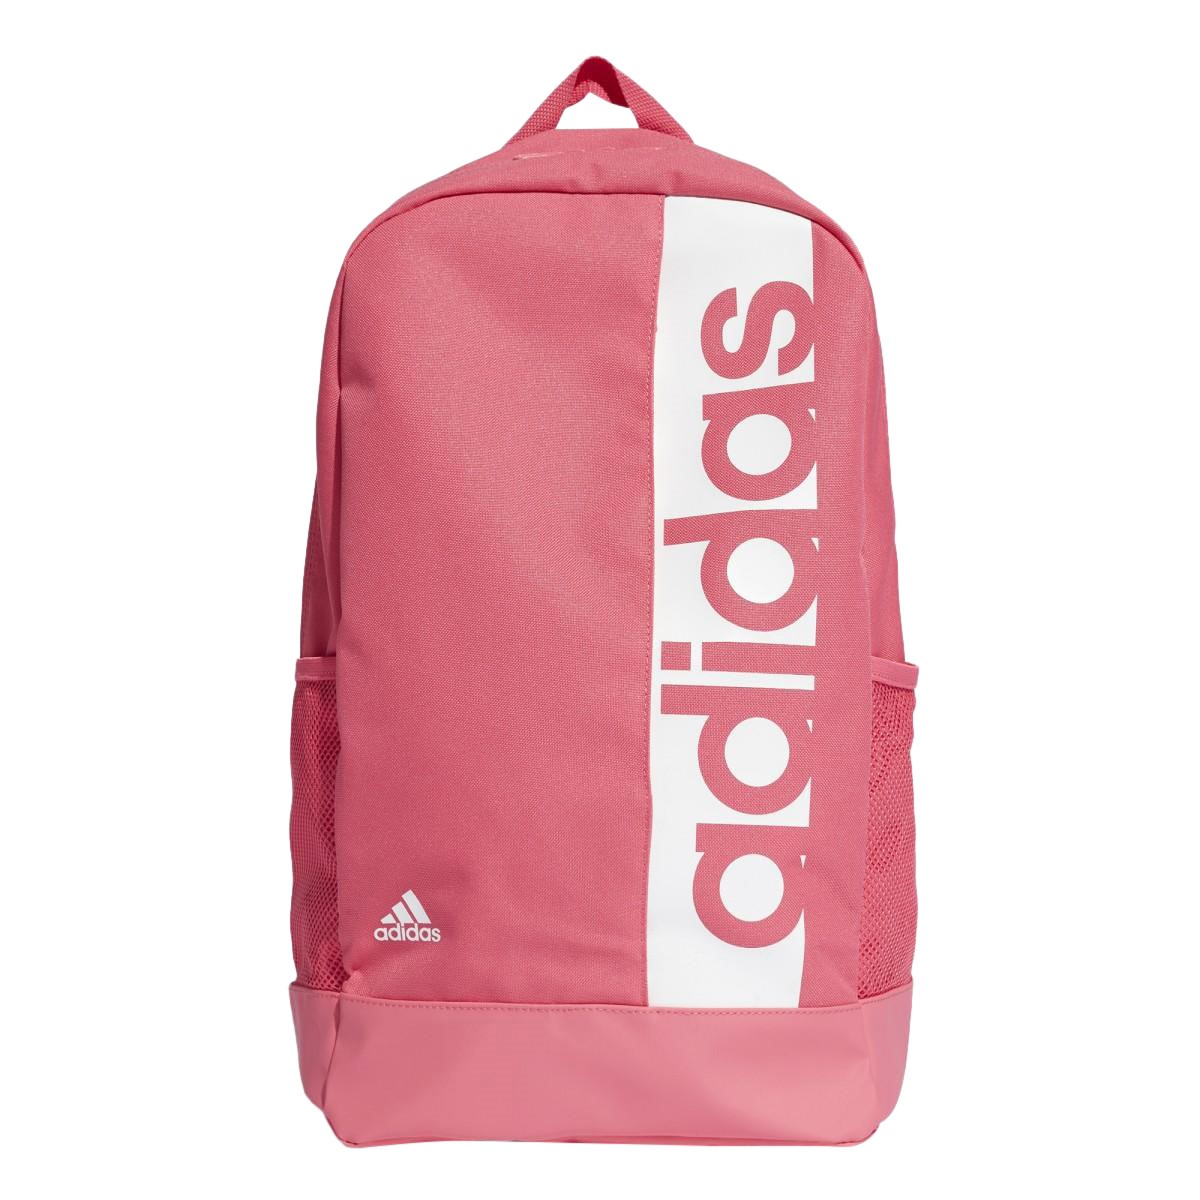 3acd79ca04c6 Adidas Linear Performance Backpack Bag - Real Pink White